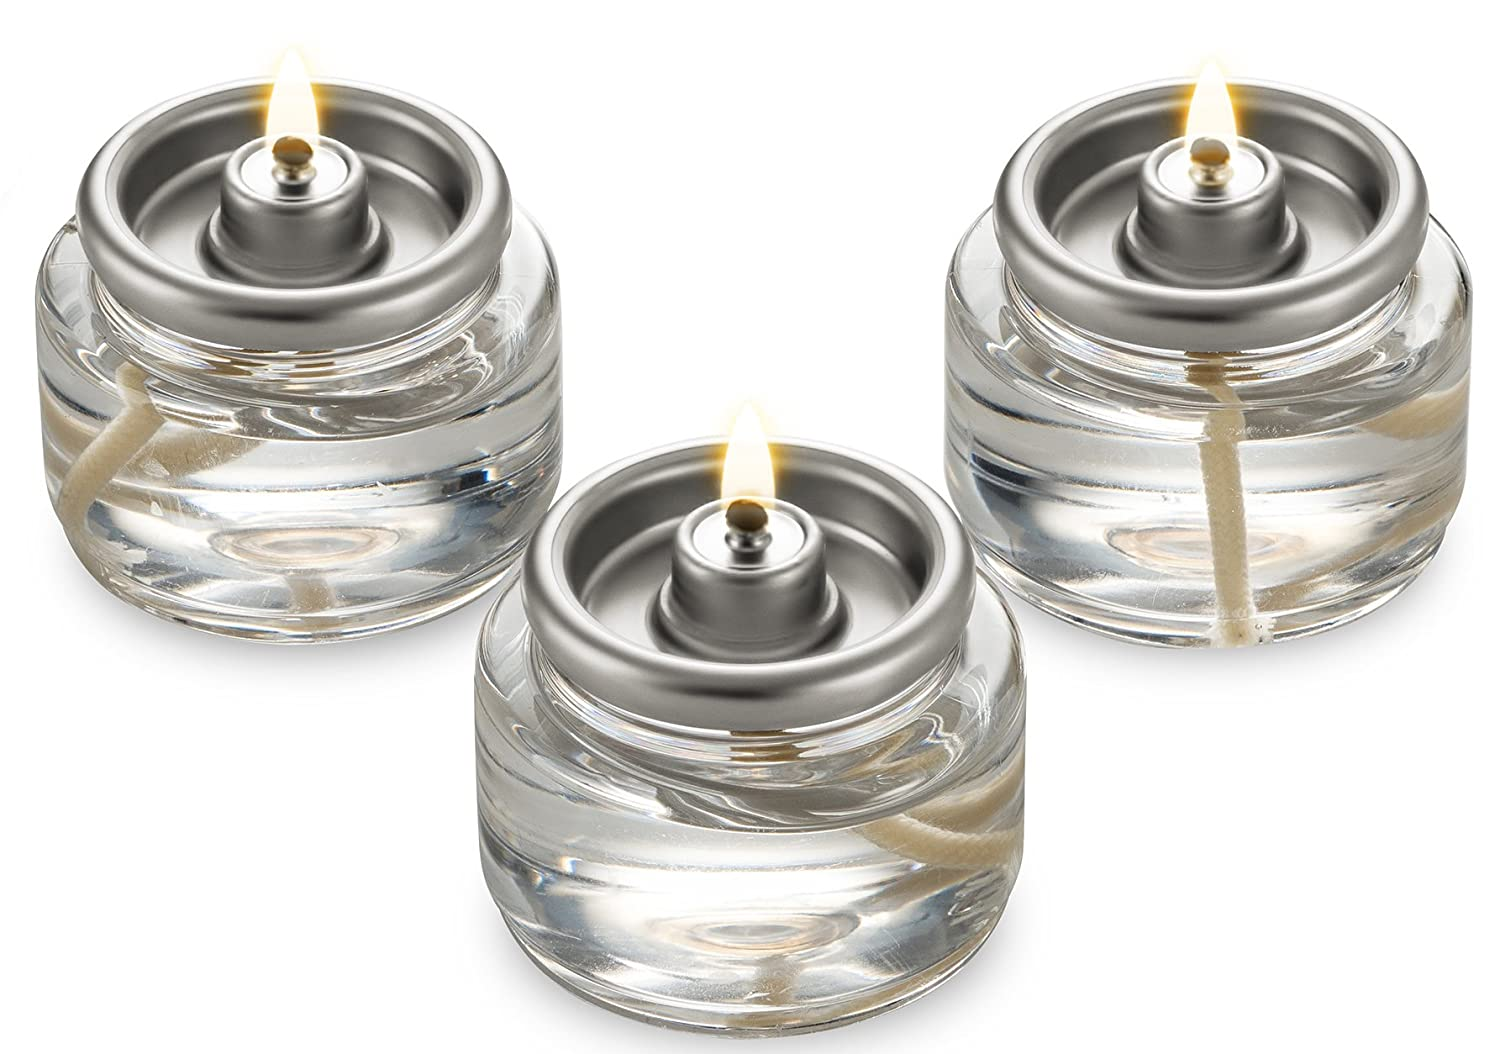 Tealight Fuel Cells Liquid Paraffin 8 Hour Burn - 20 Pack - Disposable Candle Charisma